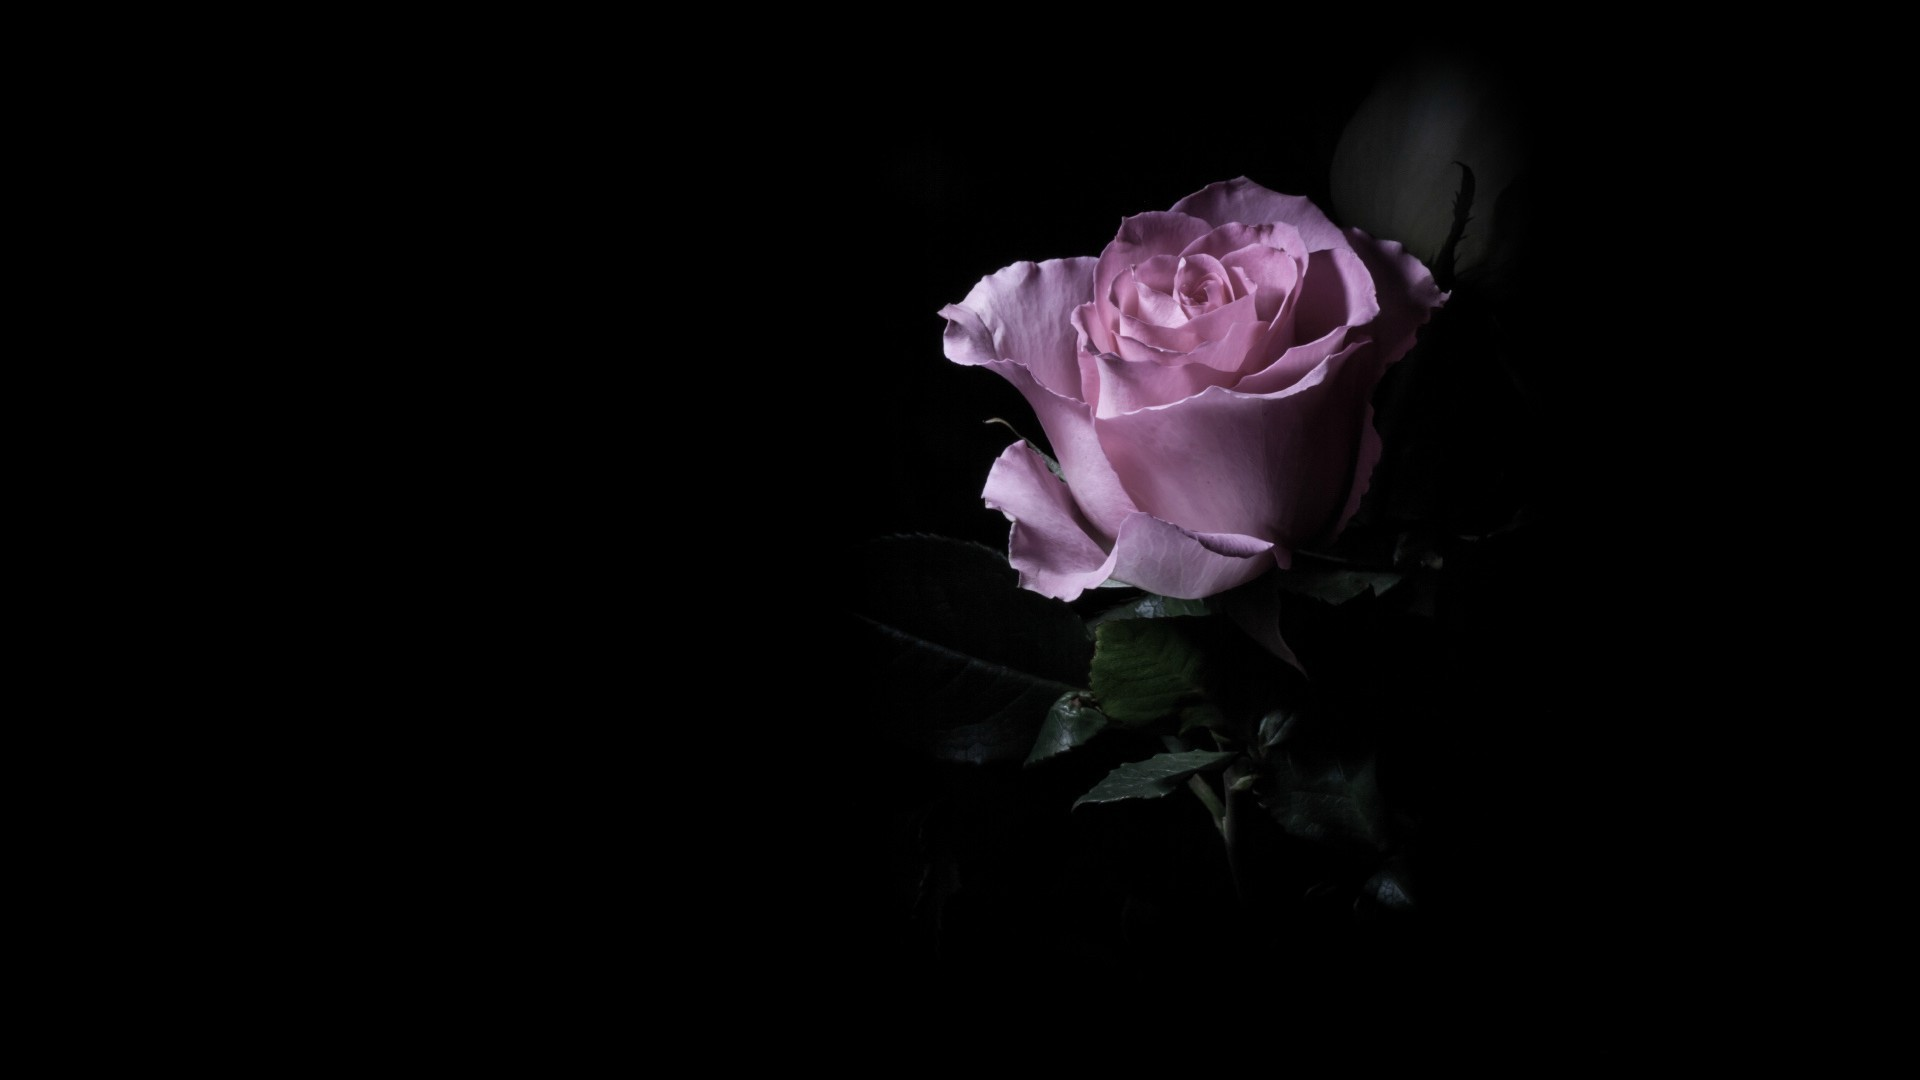 Purple roses wallpaper 22 cool hd wallpaper for Can you get purple roses